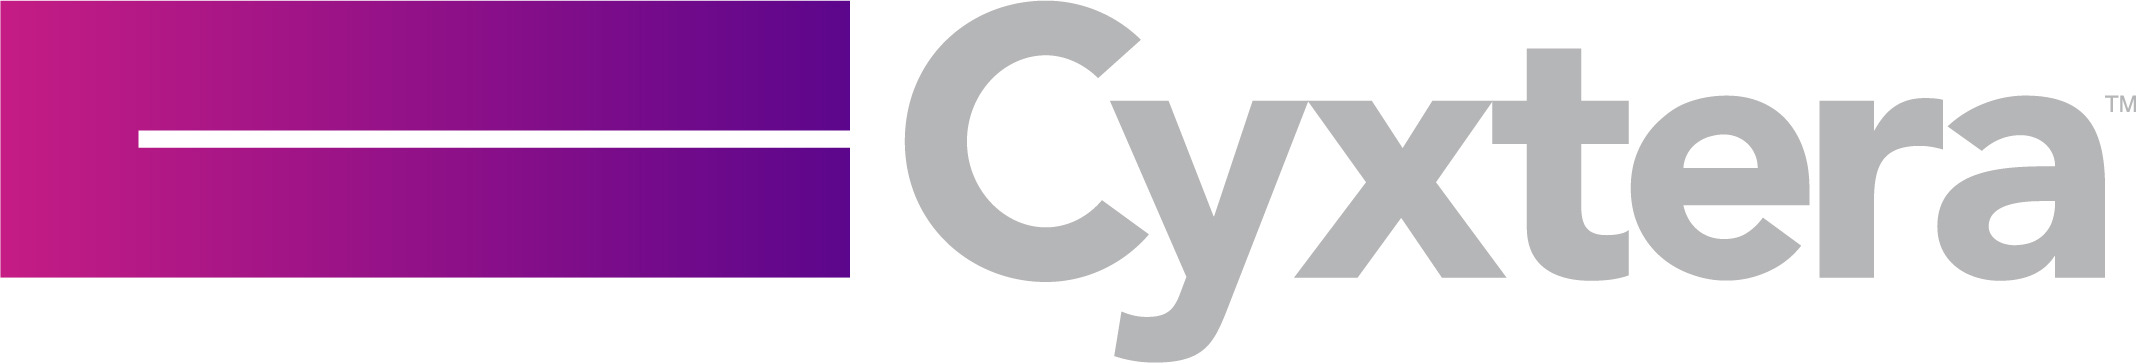 Cyxtera Technologies Inc